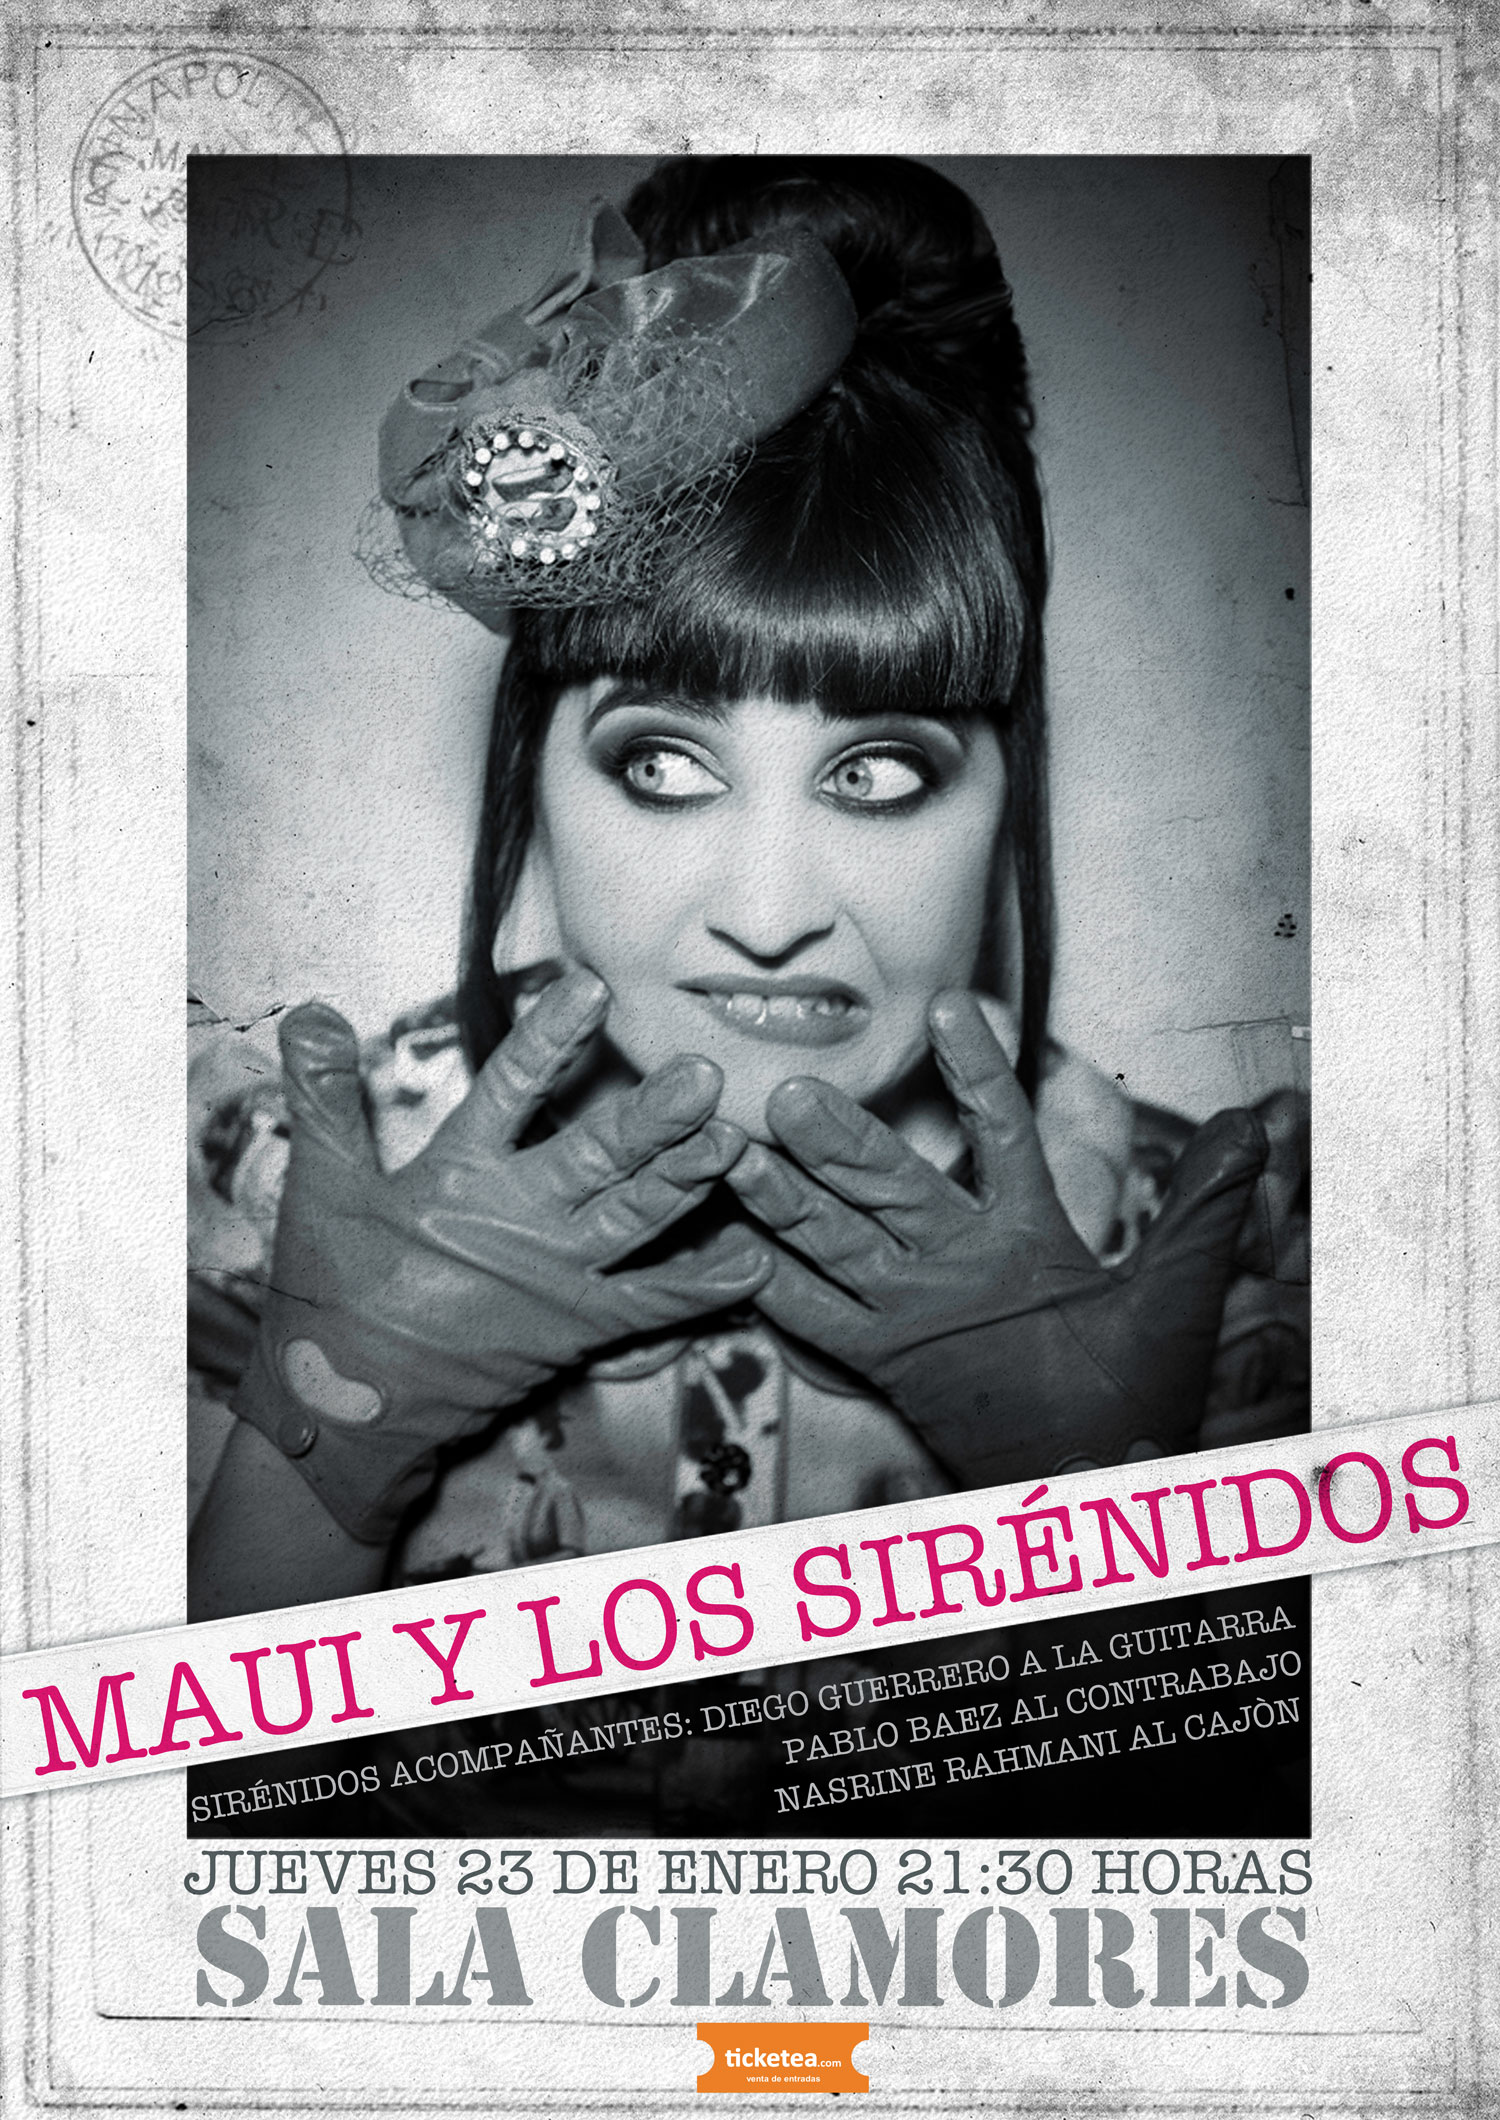 Maui y los sir nidos flamenco y jazz folklore y pop for Programacion clamores